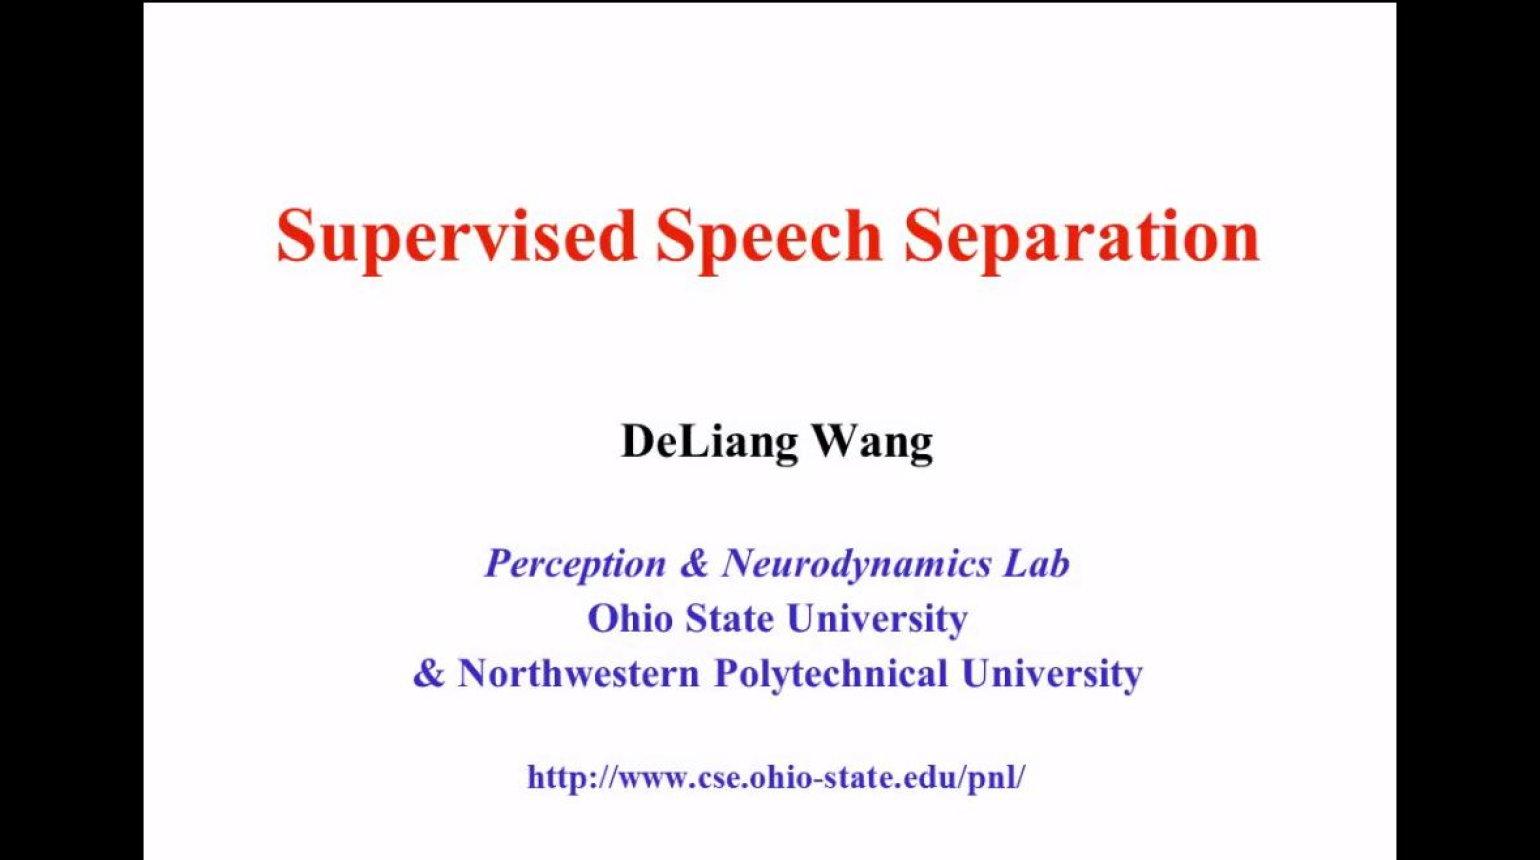 ICASSP 2016 Supervised Speech Separation